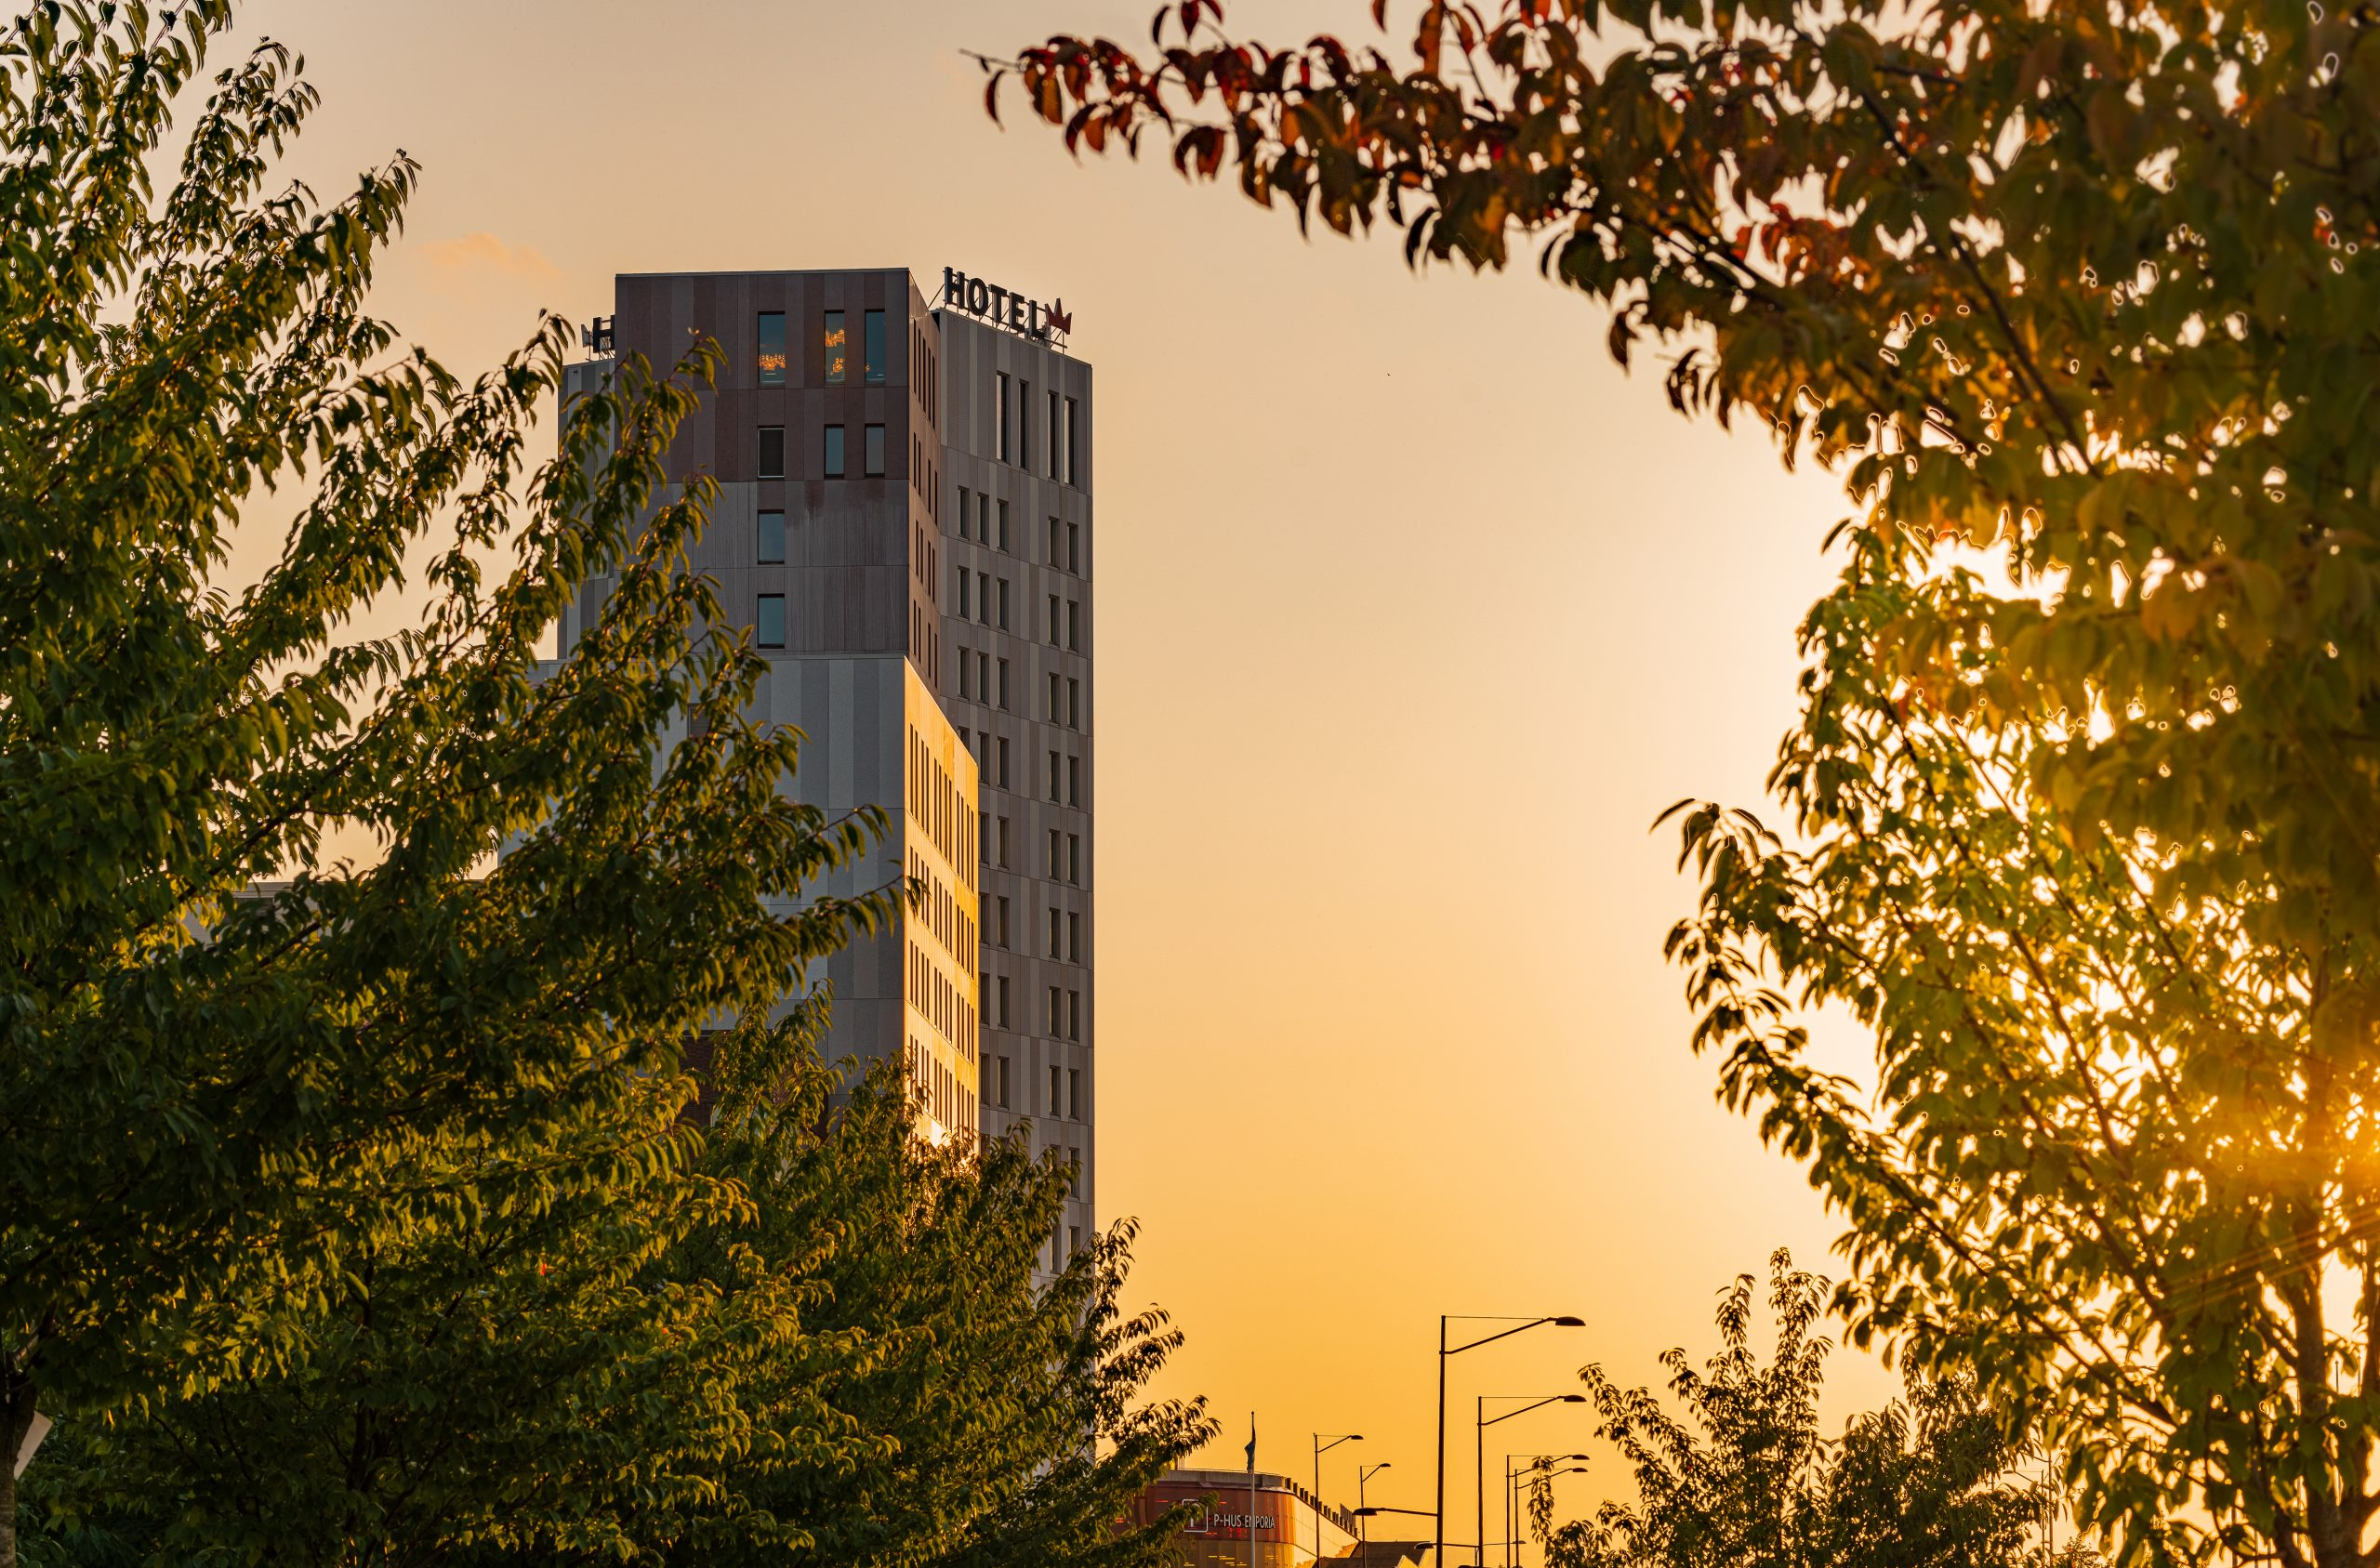 Malmö Arena Hotel, Hotel, Sunshine, Evening, Hotel, Trees